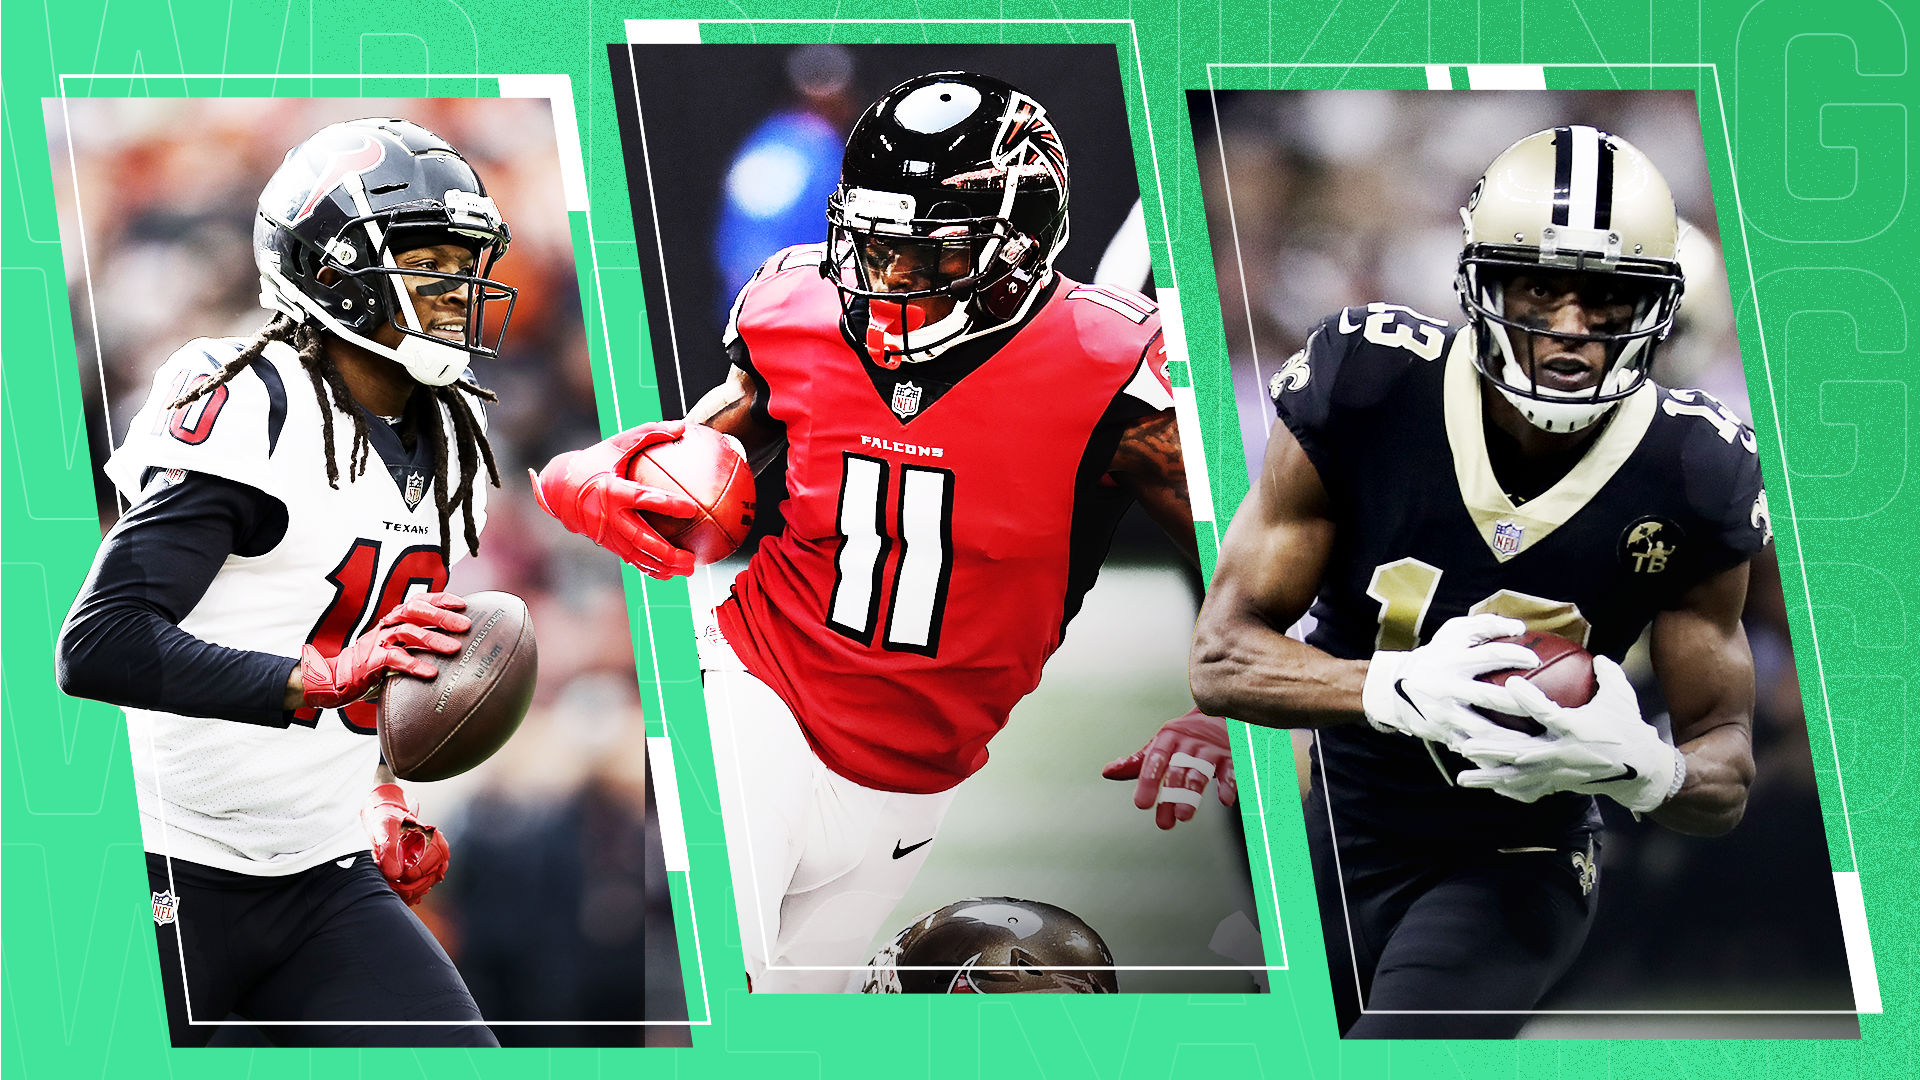 Best Receivers 2020.Ranking The Nfl S Top 25 Wide Receivers For 2019 Sporting News